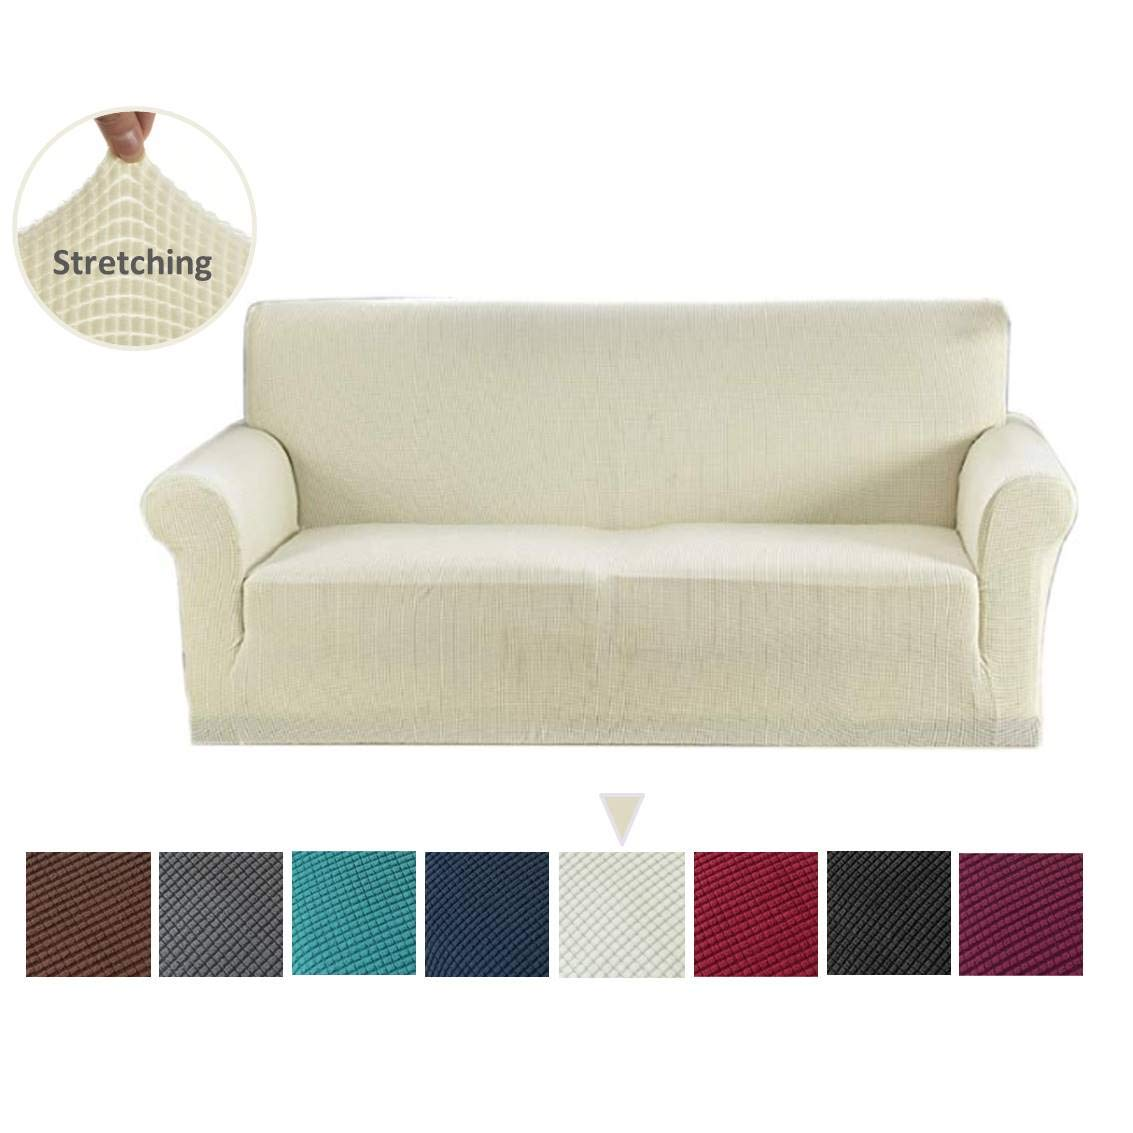 Stupendous Best Rated In Sofa Slipcovers Helpful Customer Reviews Download Free Architecture Designs Scobabritishbridgeorg